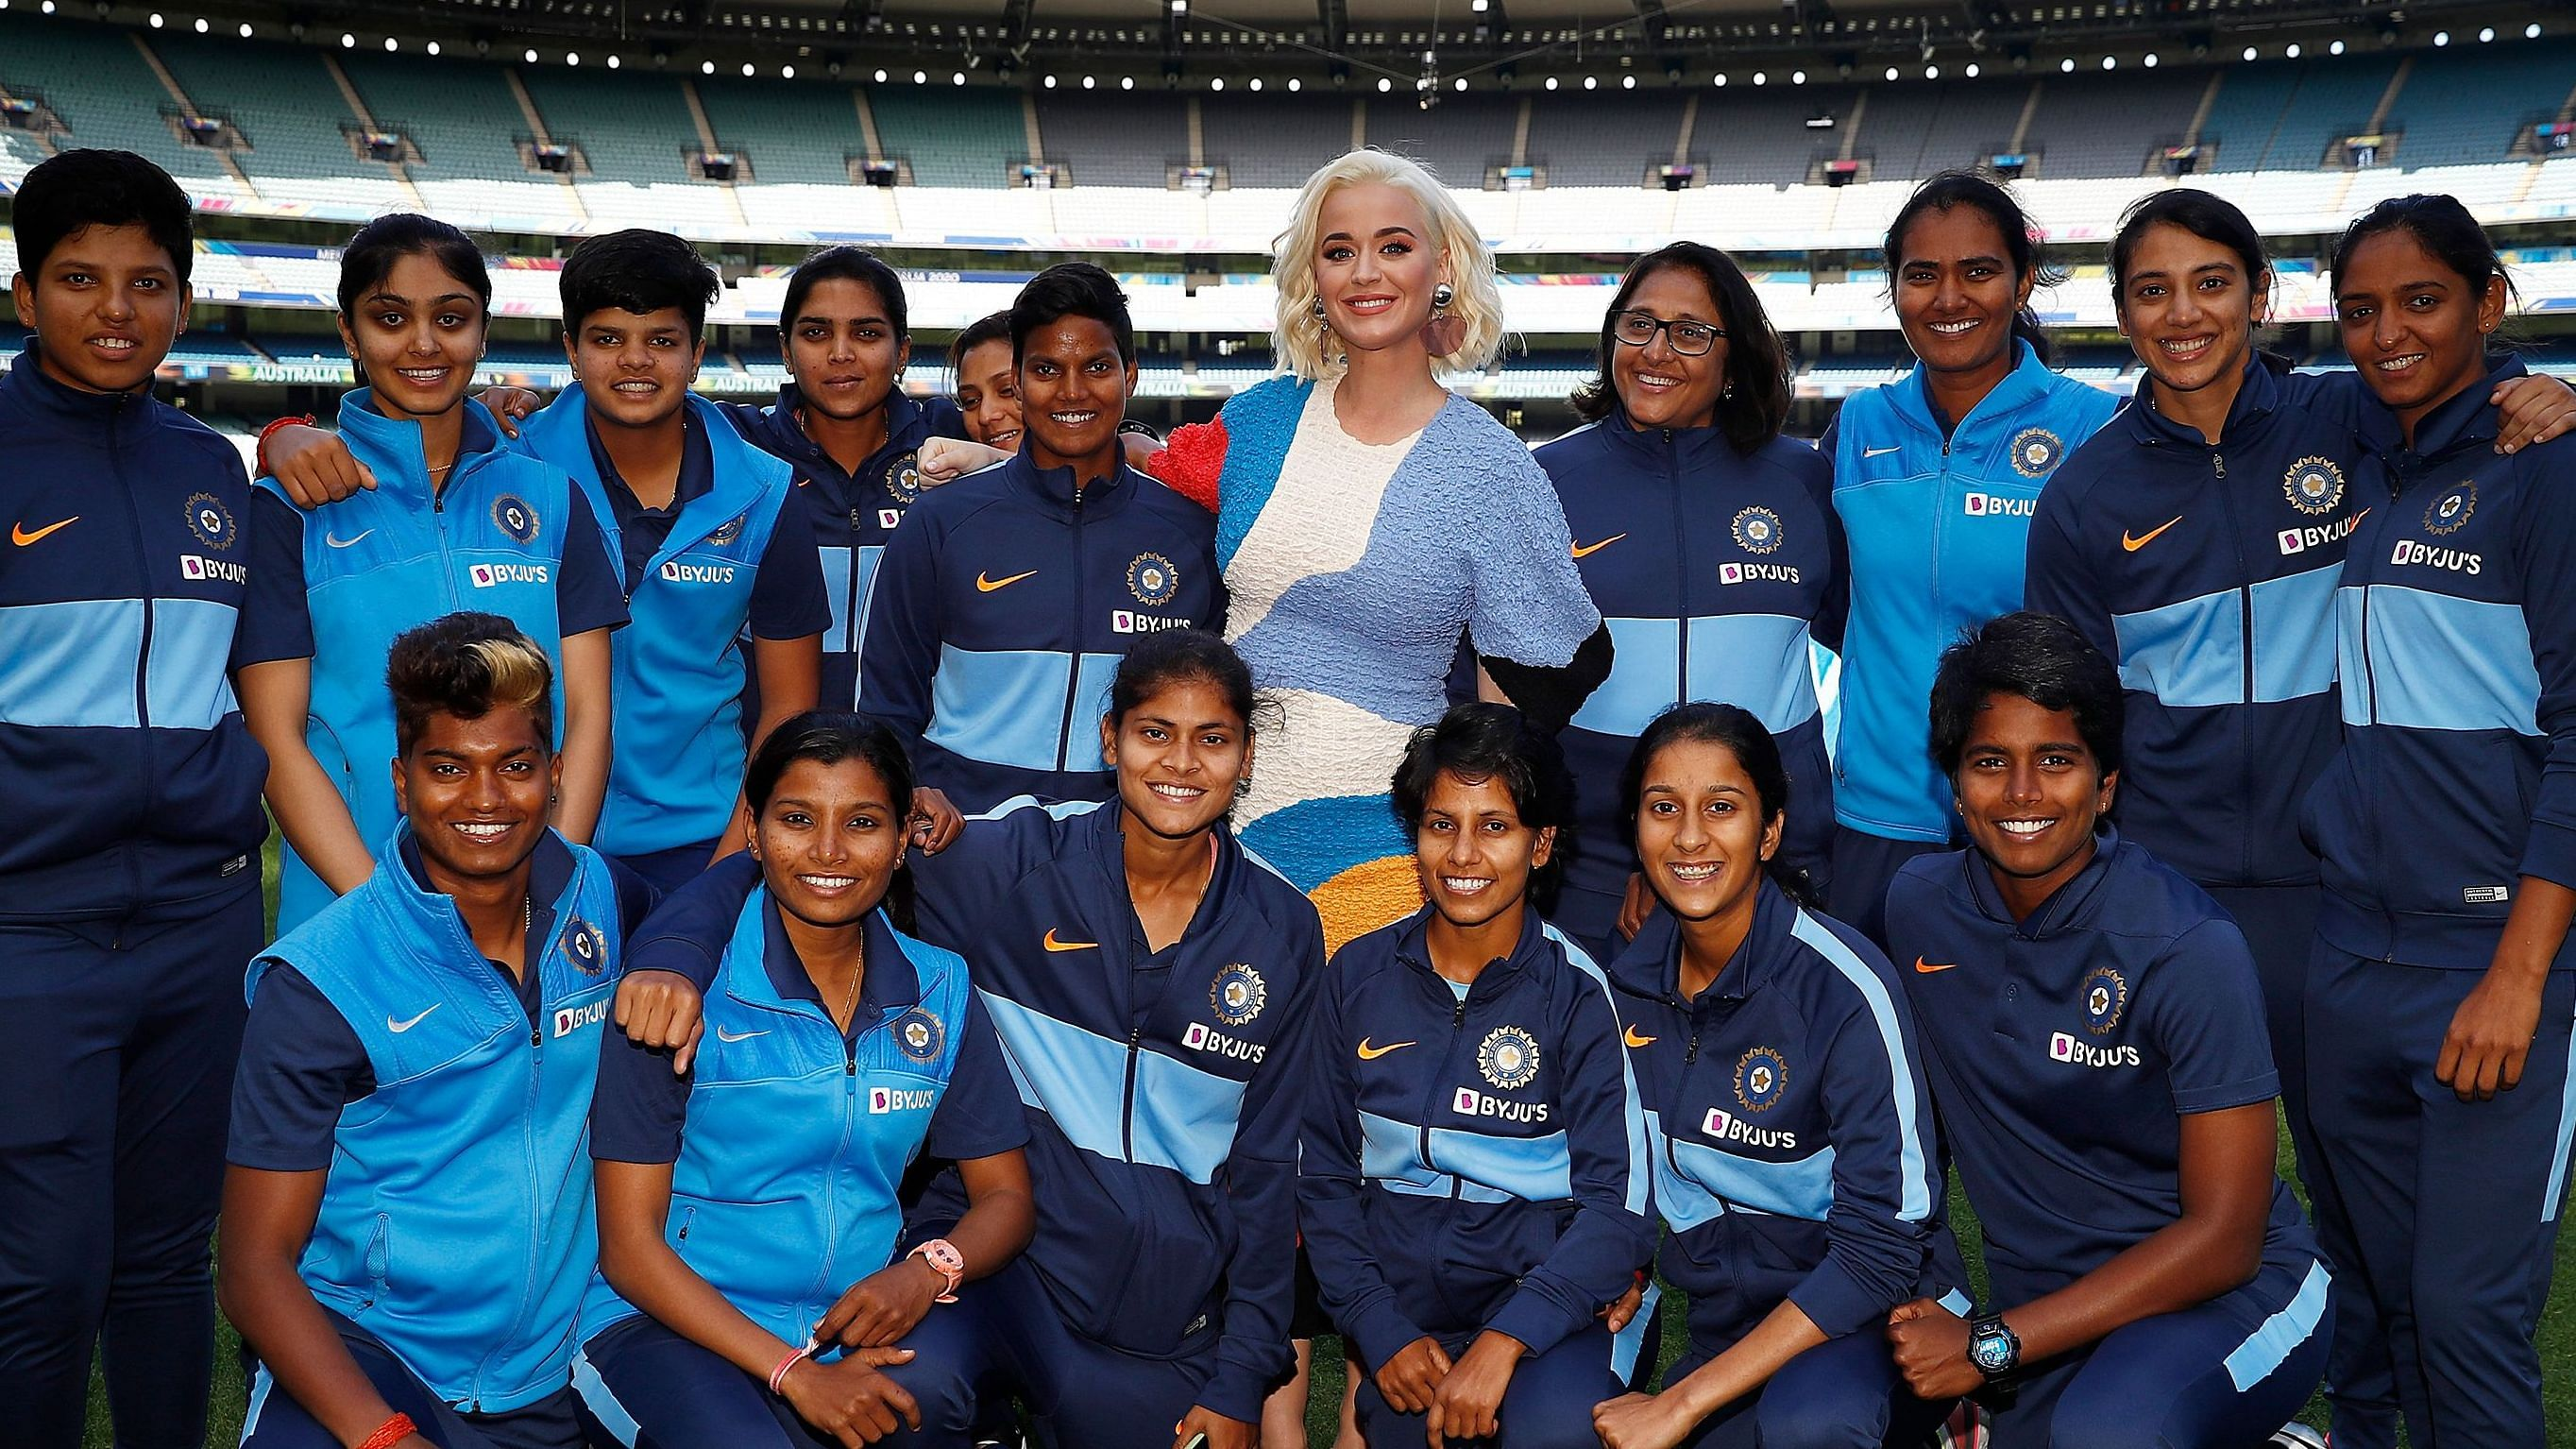 A documentary on the 2020 Women's T20 World Cup, 'Beyond the Boundary', will release on Netflix on Friday.